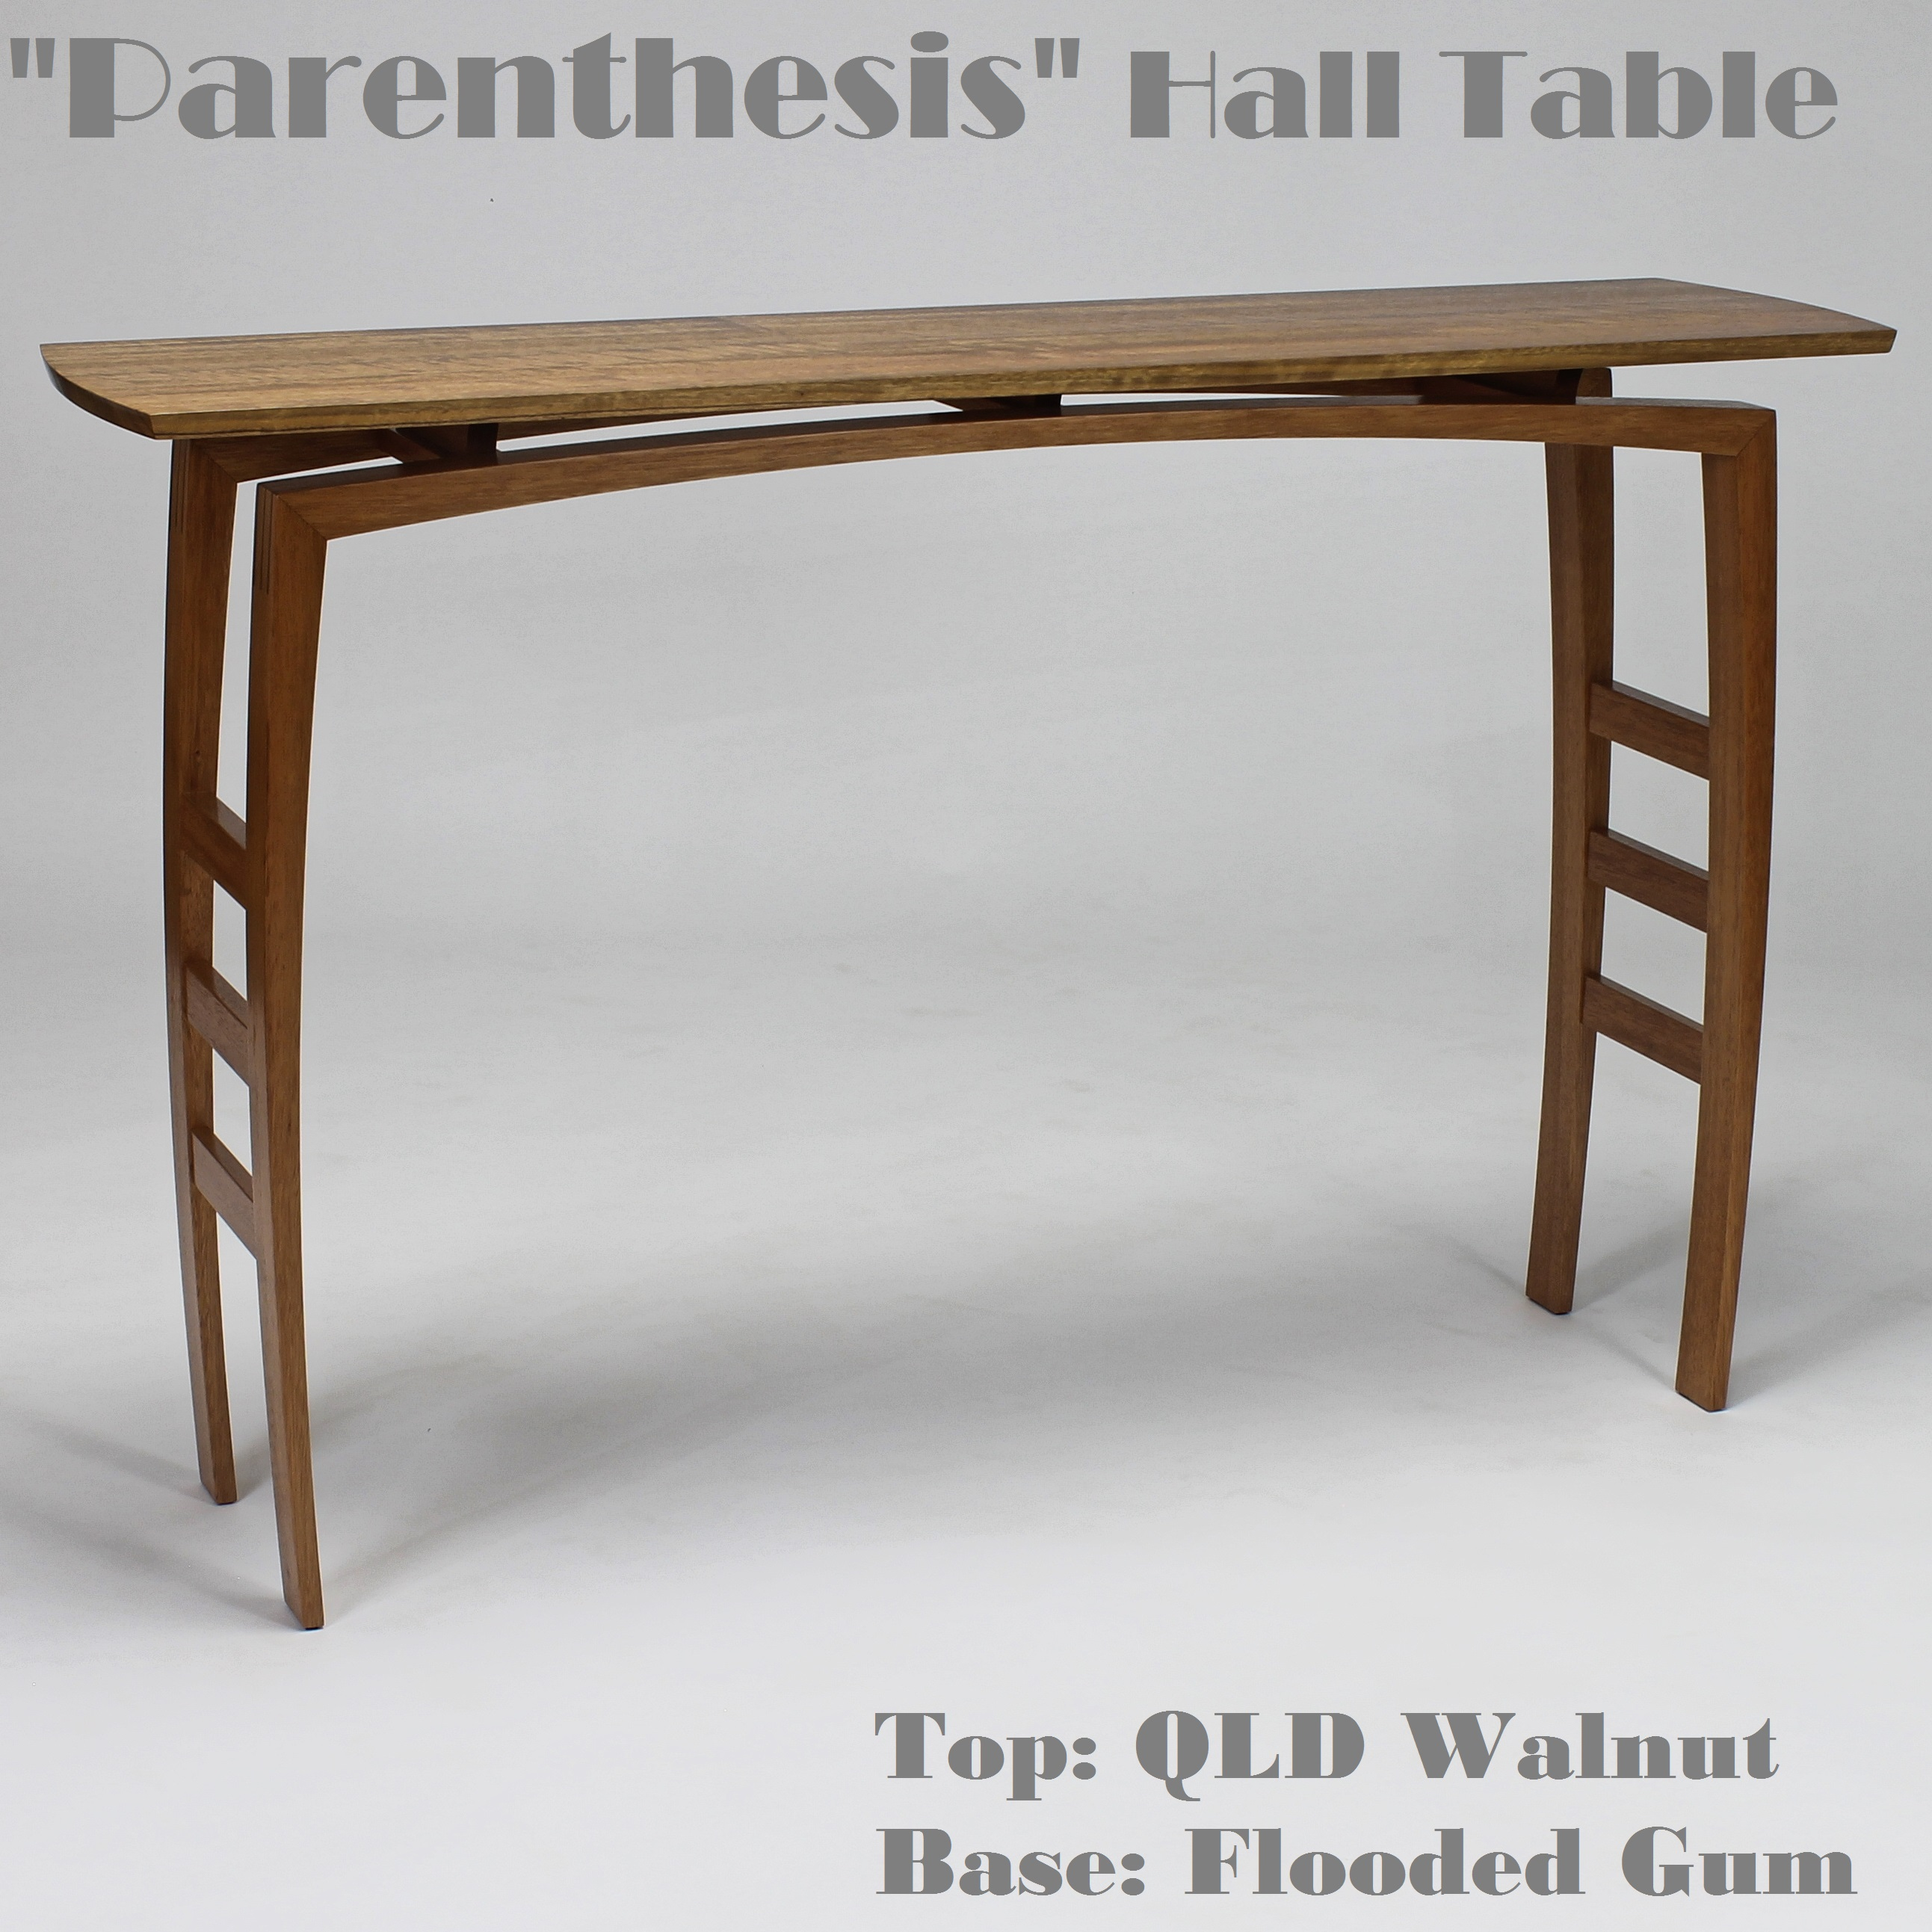 Parenthesis Hall Table Website 1